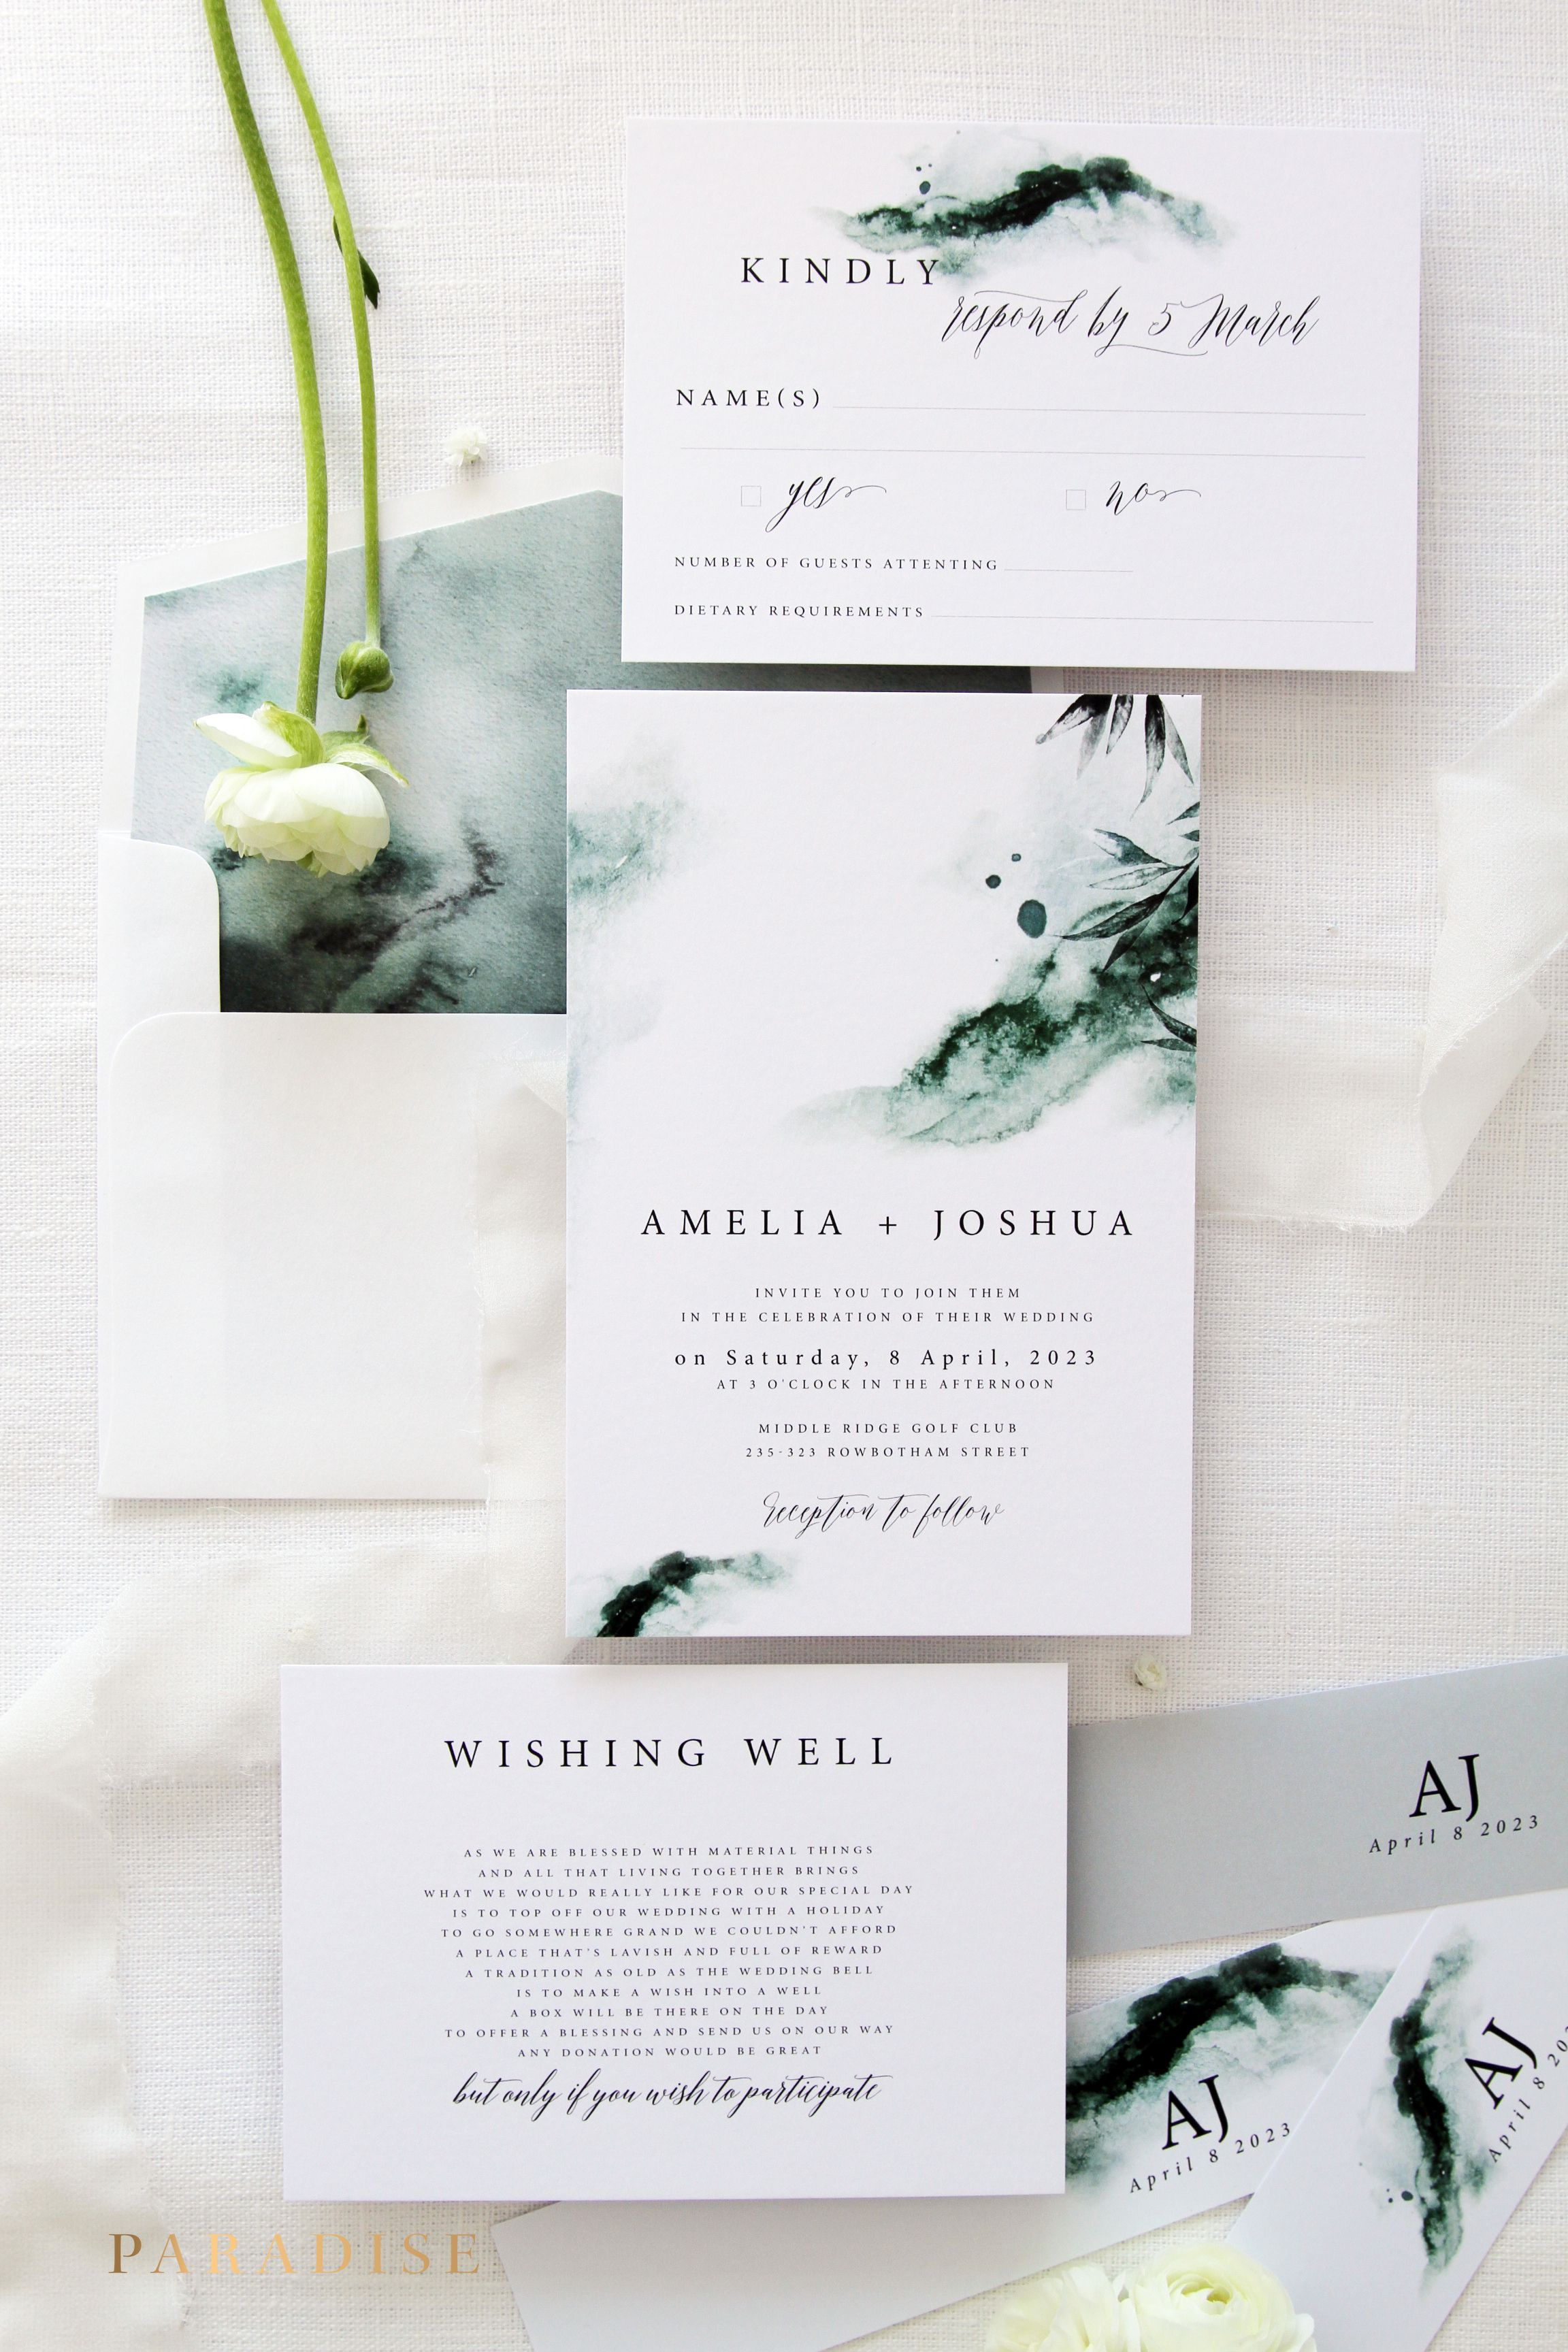 Joselyn Watercolour Wedding Invitation Set Invitation Kit Elegant Wedding Belly Bands Invitations Wedding Stationery Printable Or Printed Wedding Invitation Sets Watercolor Wedding Invitations Wedding Invitation Cards